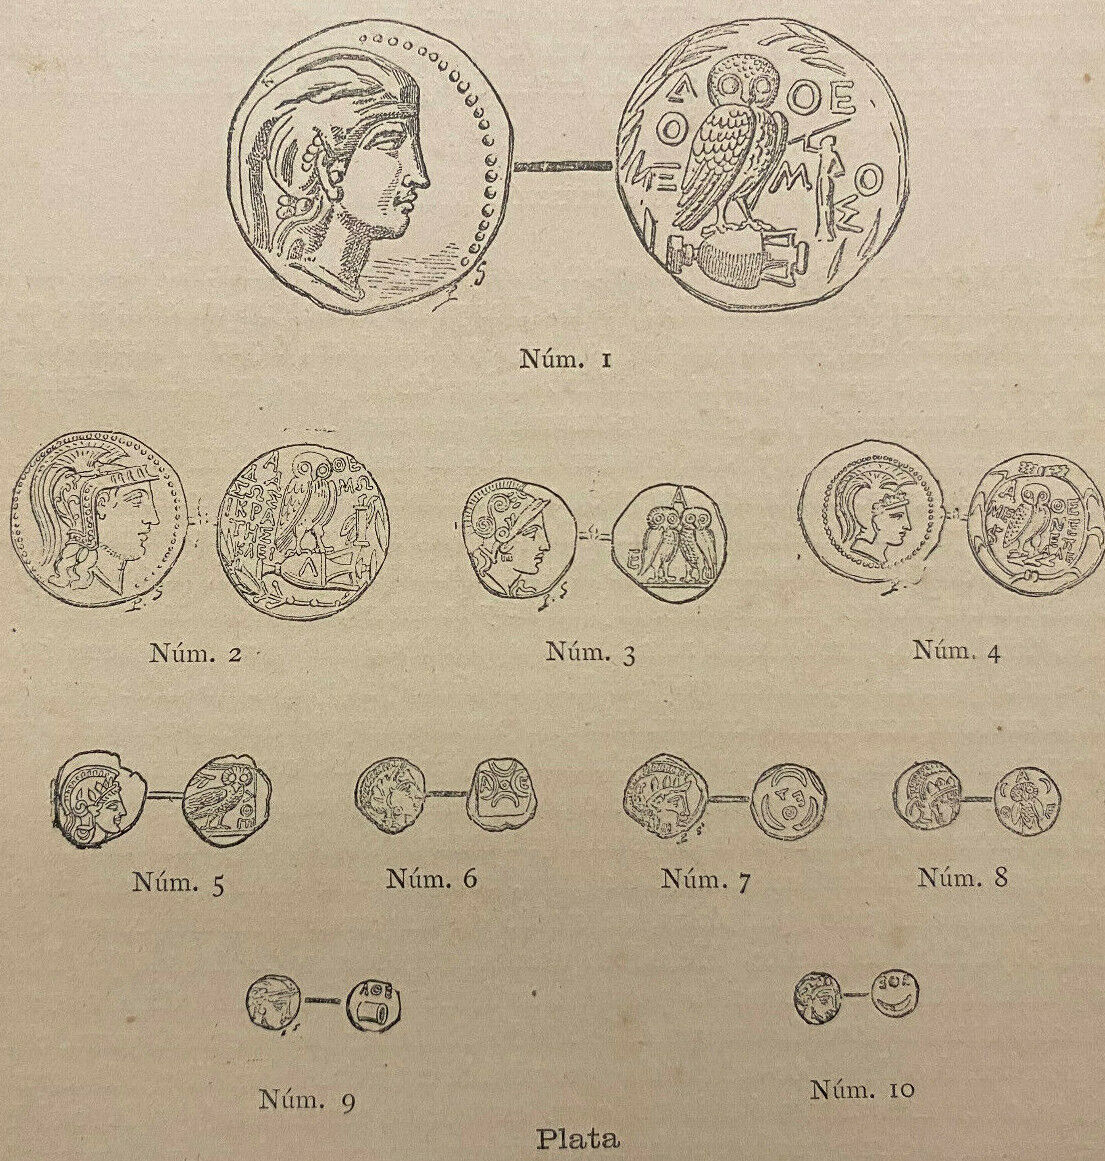 Ancient Roman Greek Coins, Small Antique 1870s Engraved Prints, Page 6 X 9  - $4.99